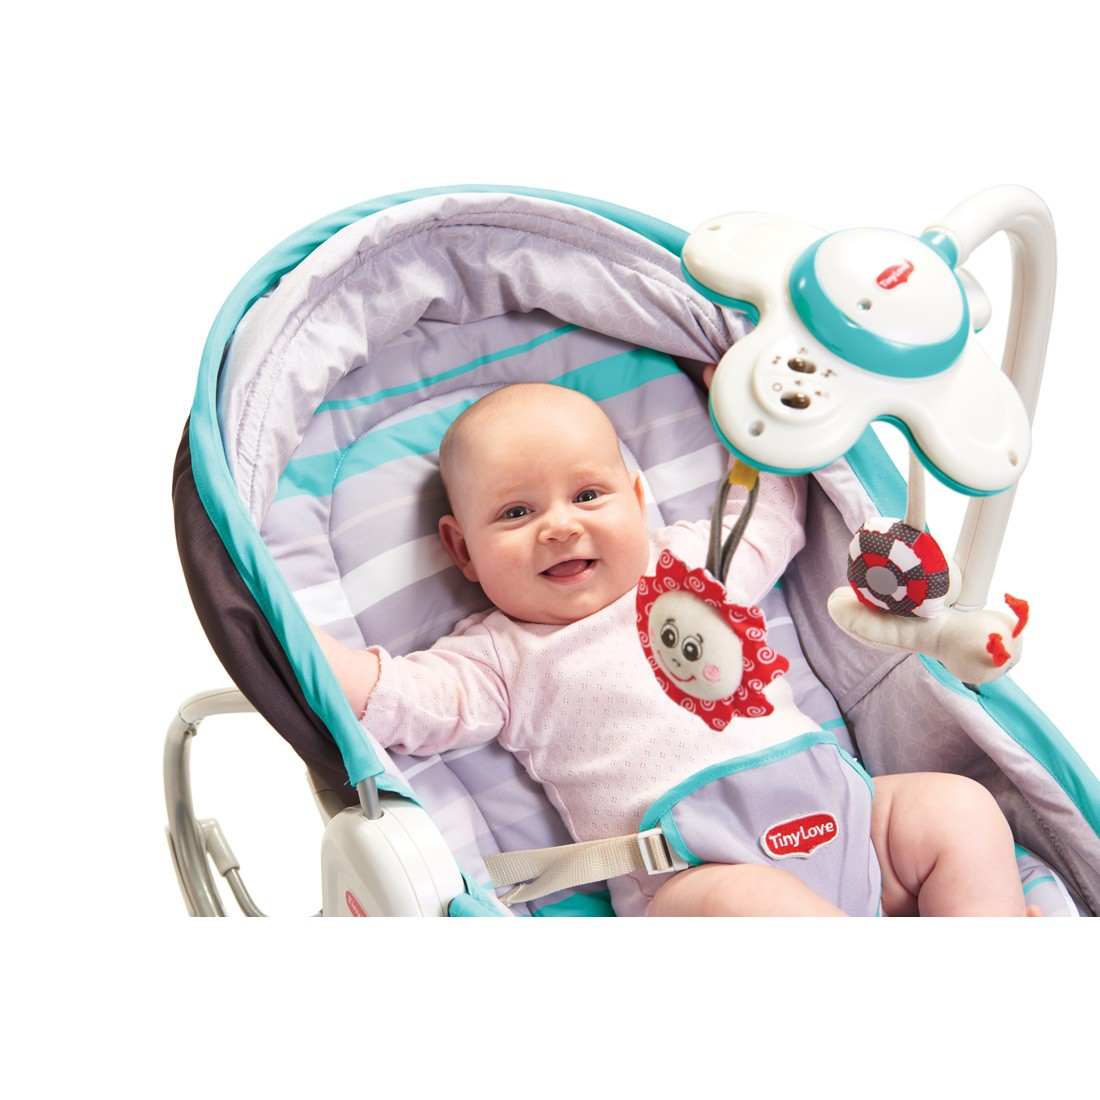 vibrating chair baby office chairs at costco tiny love 3 in 1 rocking bouncy moses basket